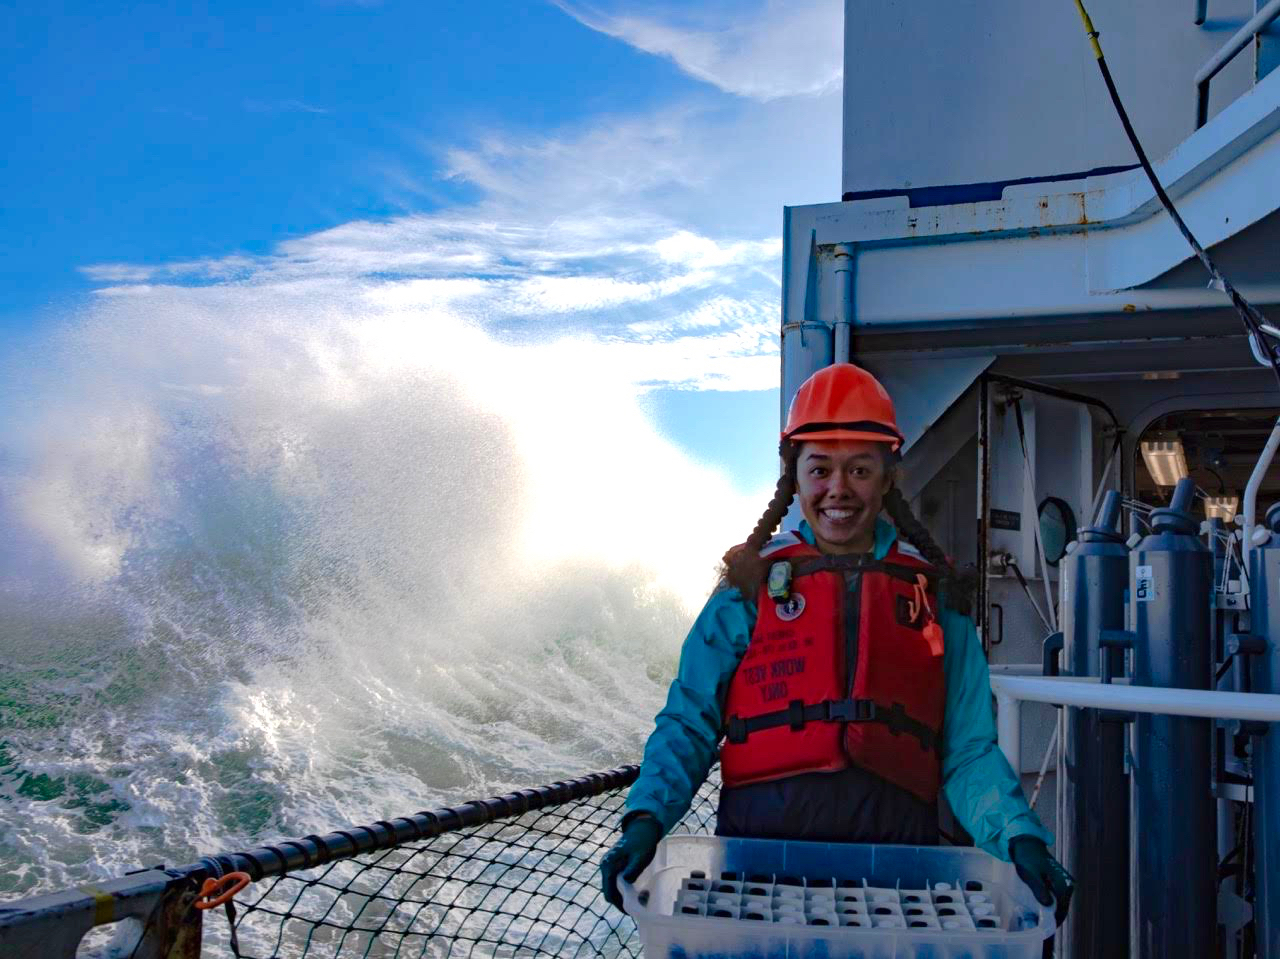 Carina holding a rack of water samples on a research vessel with a giant wave swell behind her.